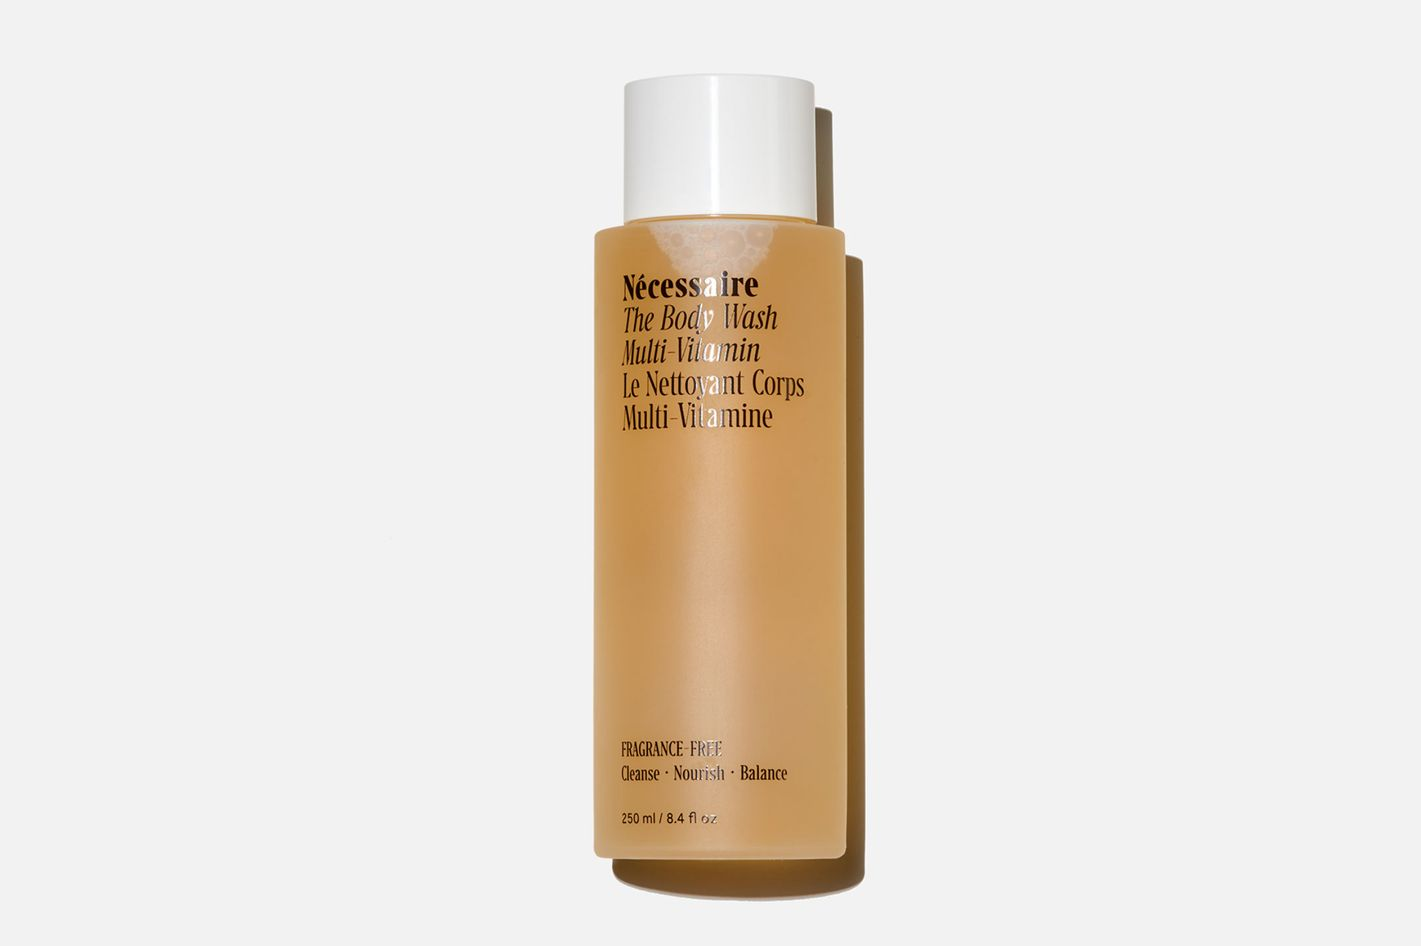 Necessaire The Body Wash